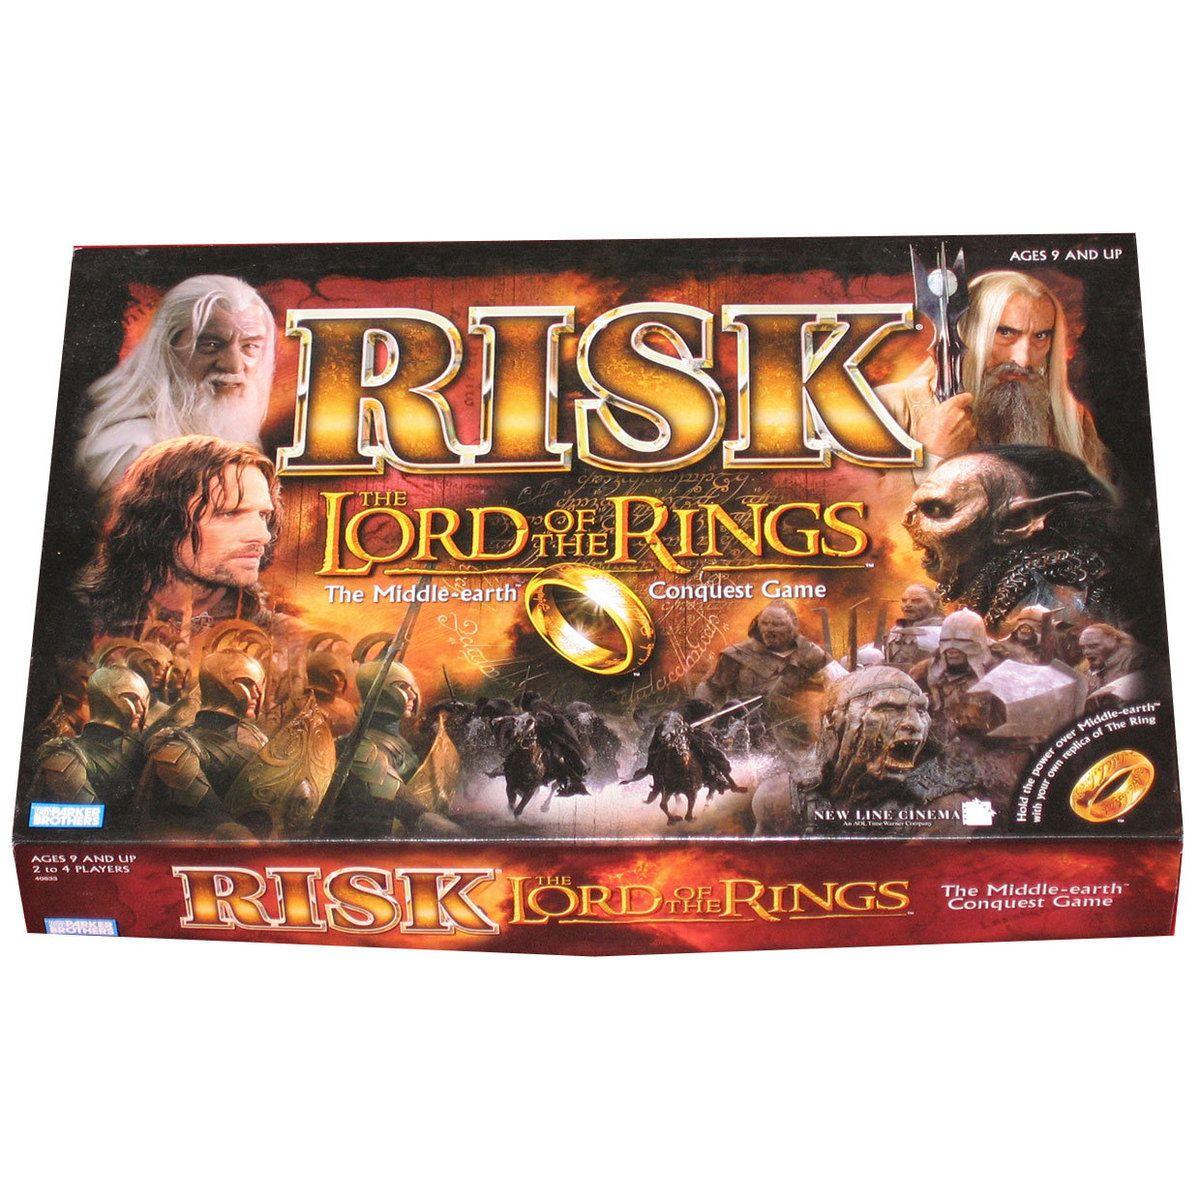 LotR Risk. I think I just found the coolest version of